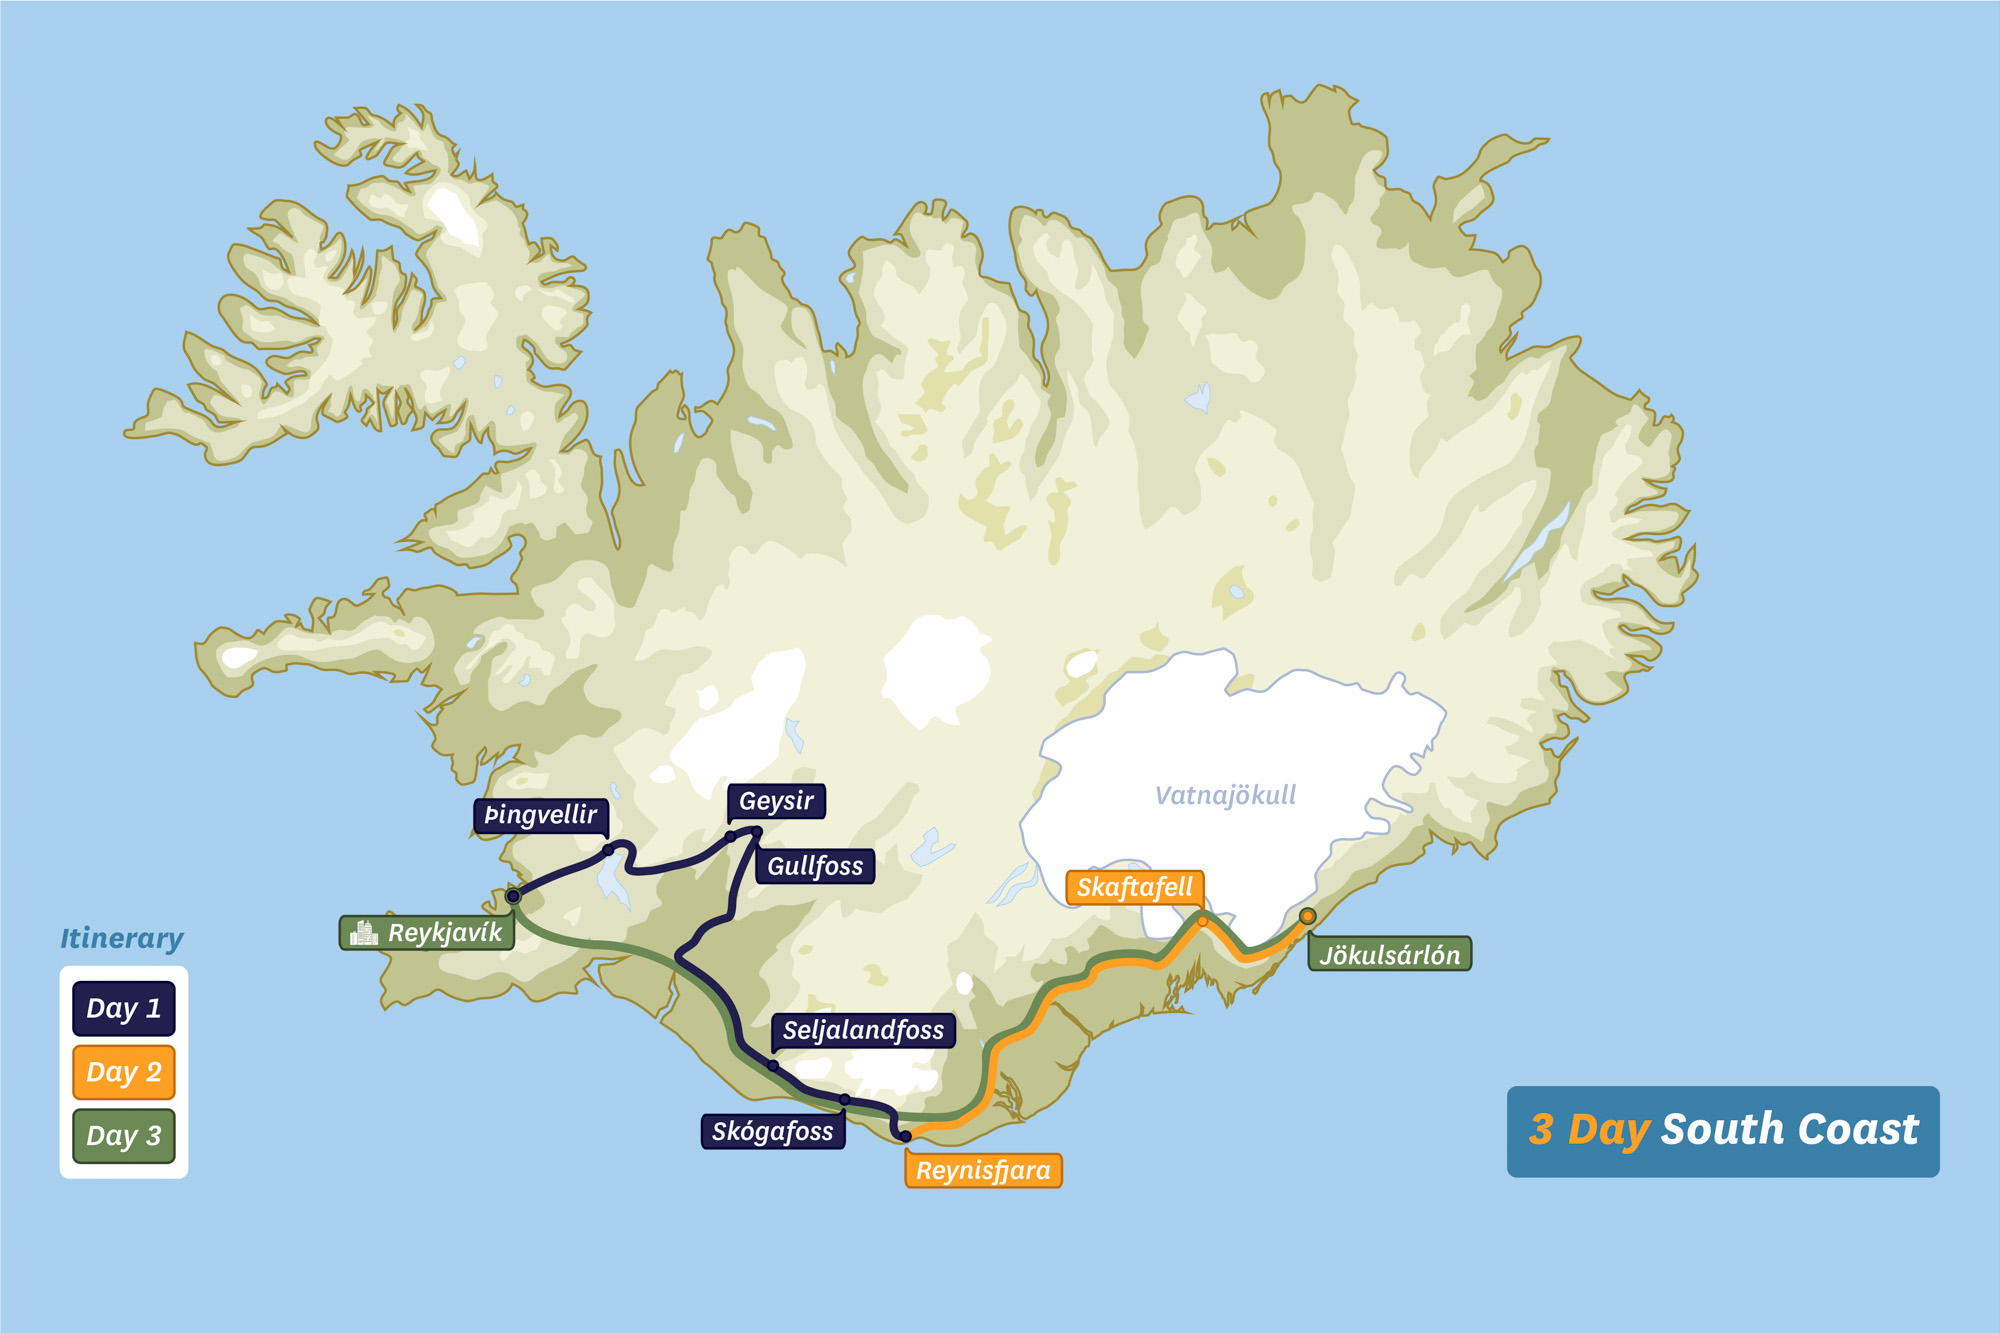 Map of Iceland - 3 Day South Coast